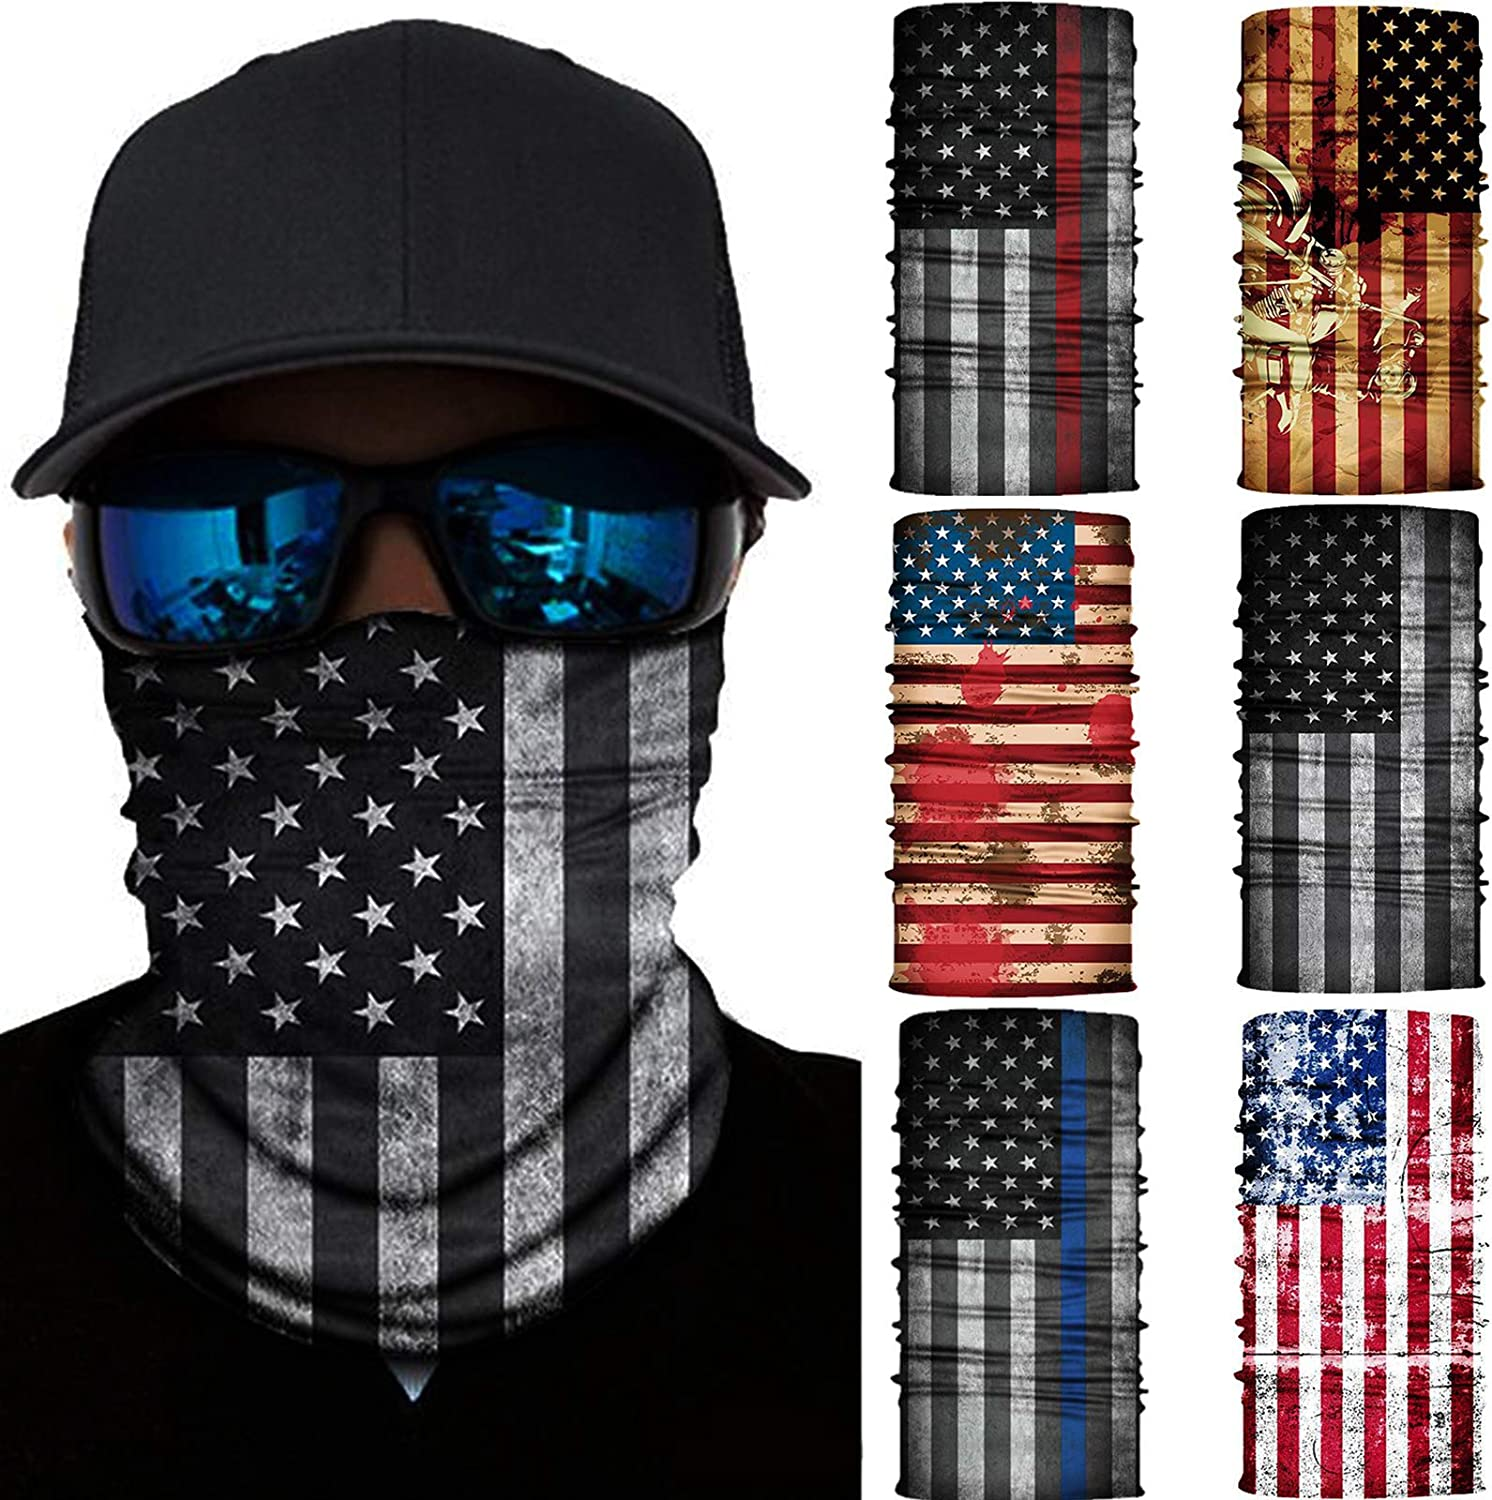 6 Pcs Masks Scarf Dust Protection Neck Gaiter Seamless Bandana National Flag Rave Face Mask Dust Wind UV Protection Scarf Sports Headwear Balaclava for Man Woman Blue